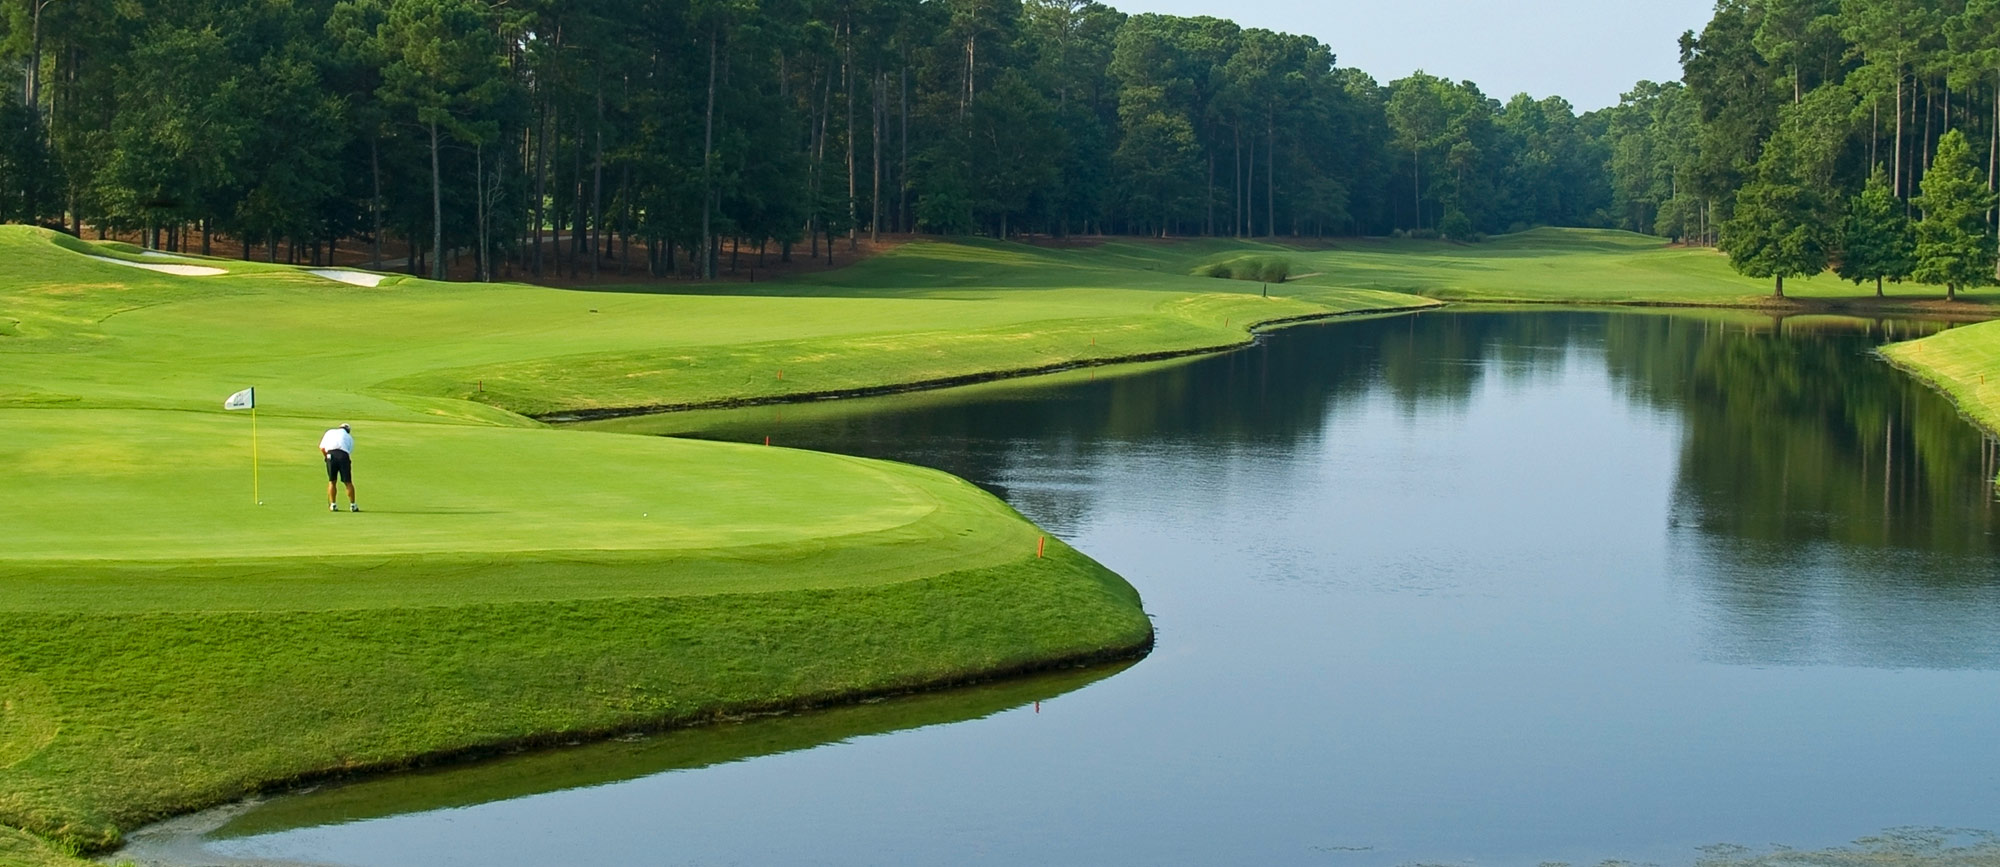 Wooded golf links with water hazard